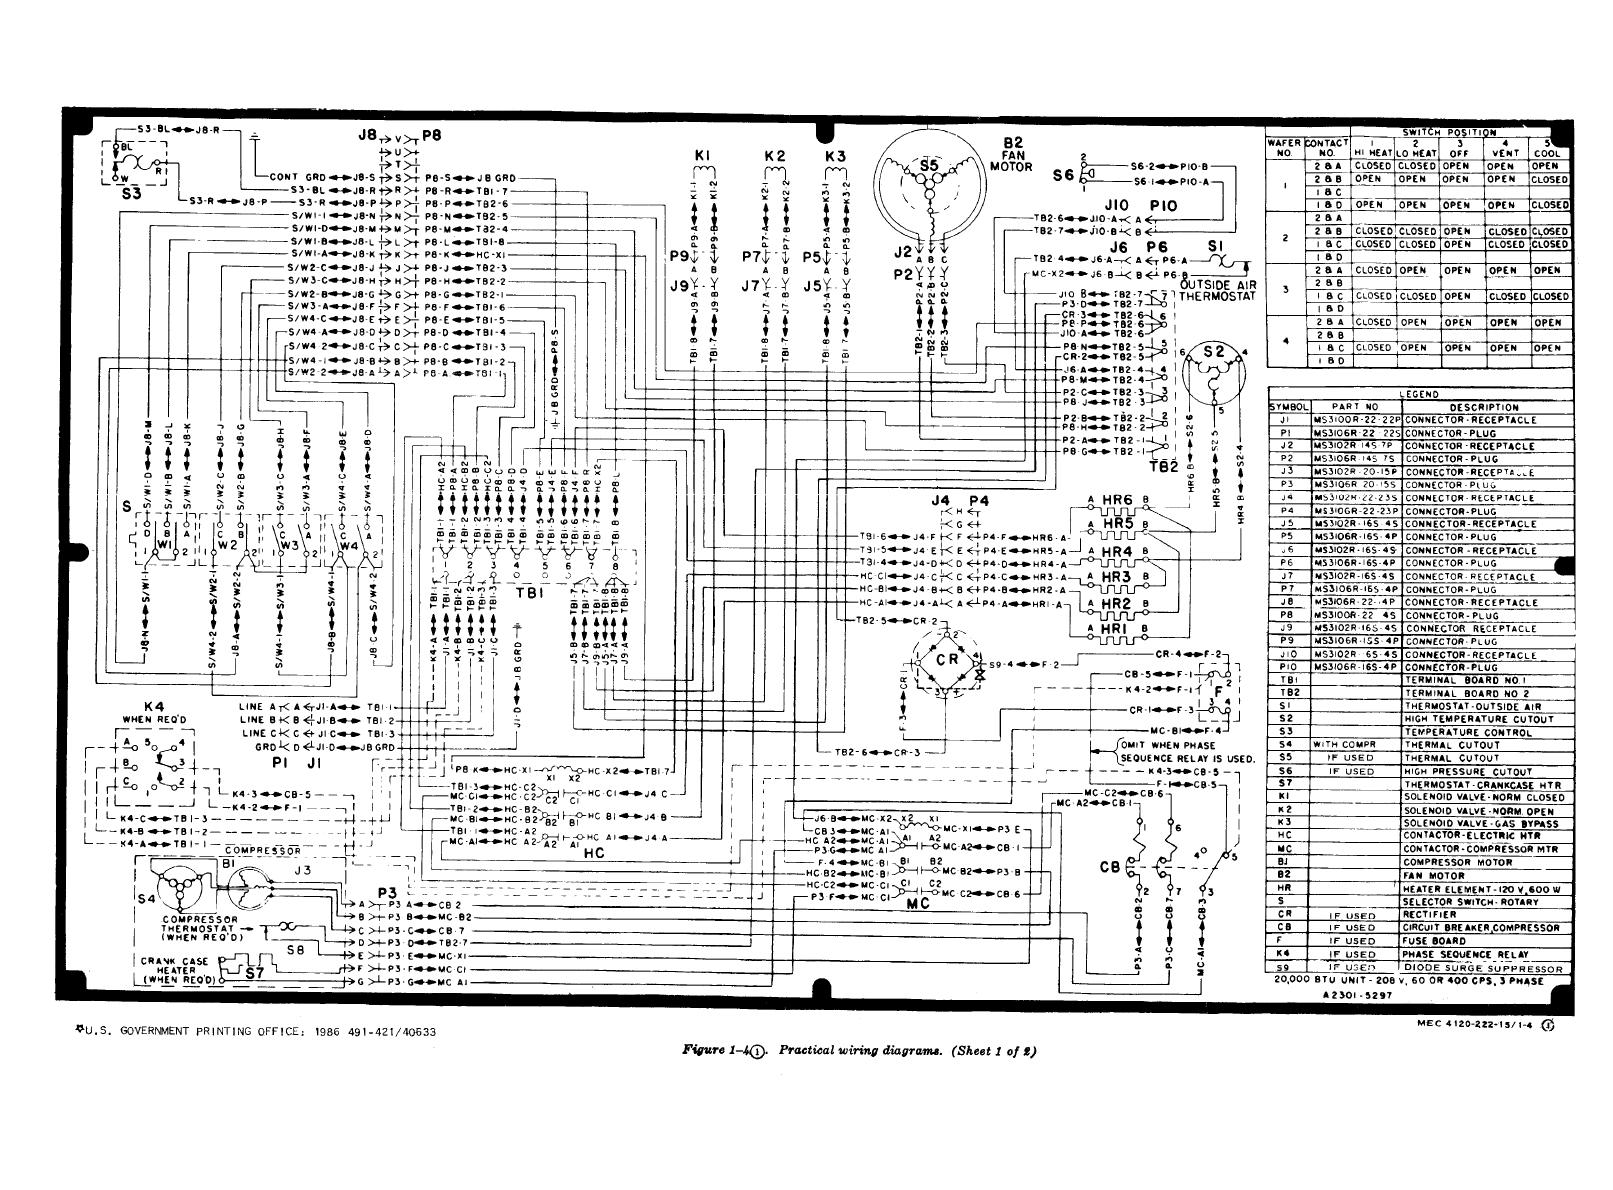 TM 5 4120 222 140093im pdf] version trane baystat 150a pdf (28 pages) trane baystat 150 trane baysens019b thermostat wiring diagram at alyssarenee.co